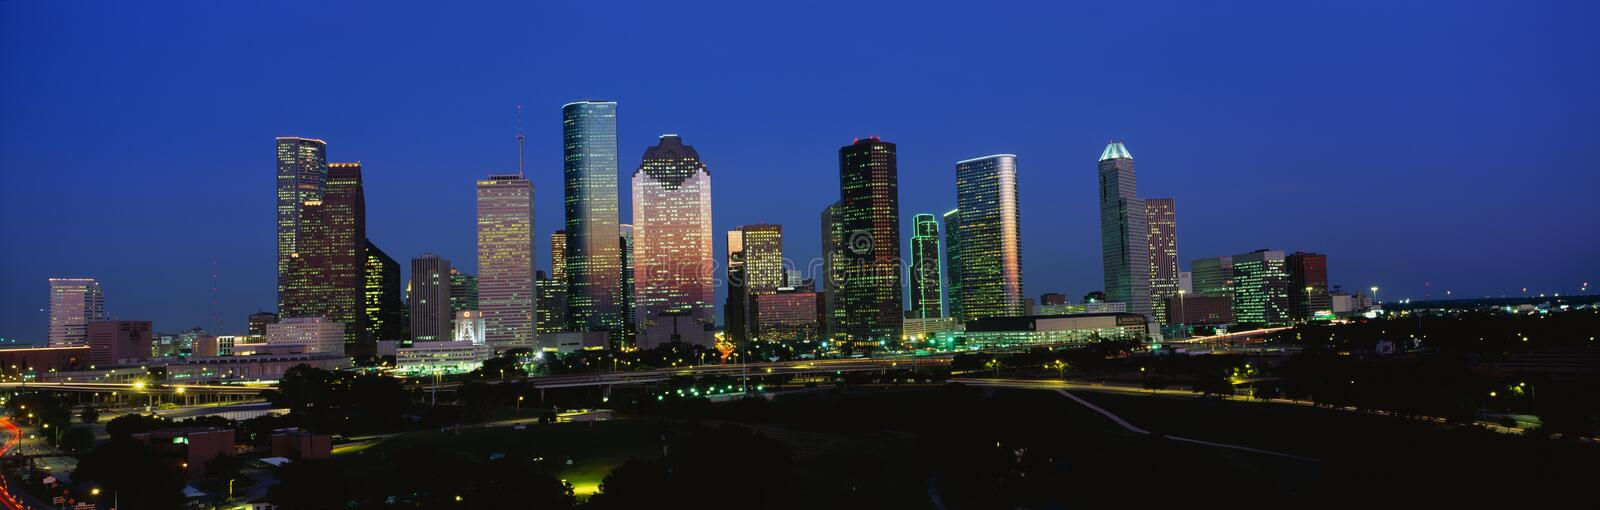 Skyline de Houston fotografia de stock